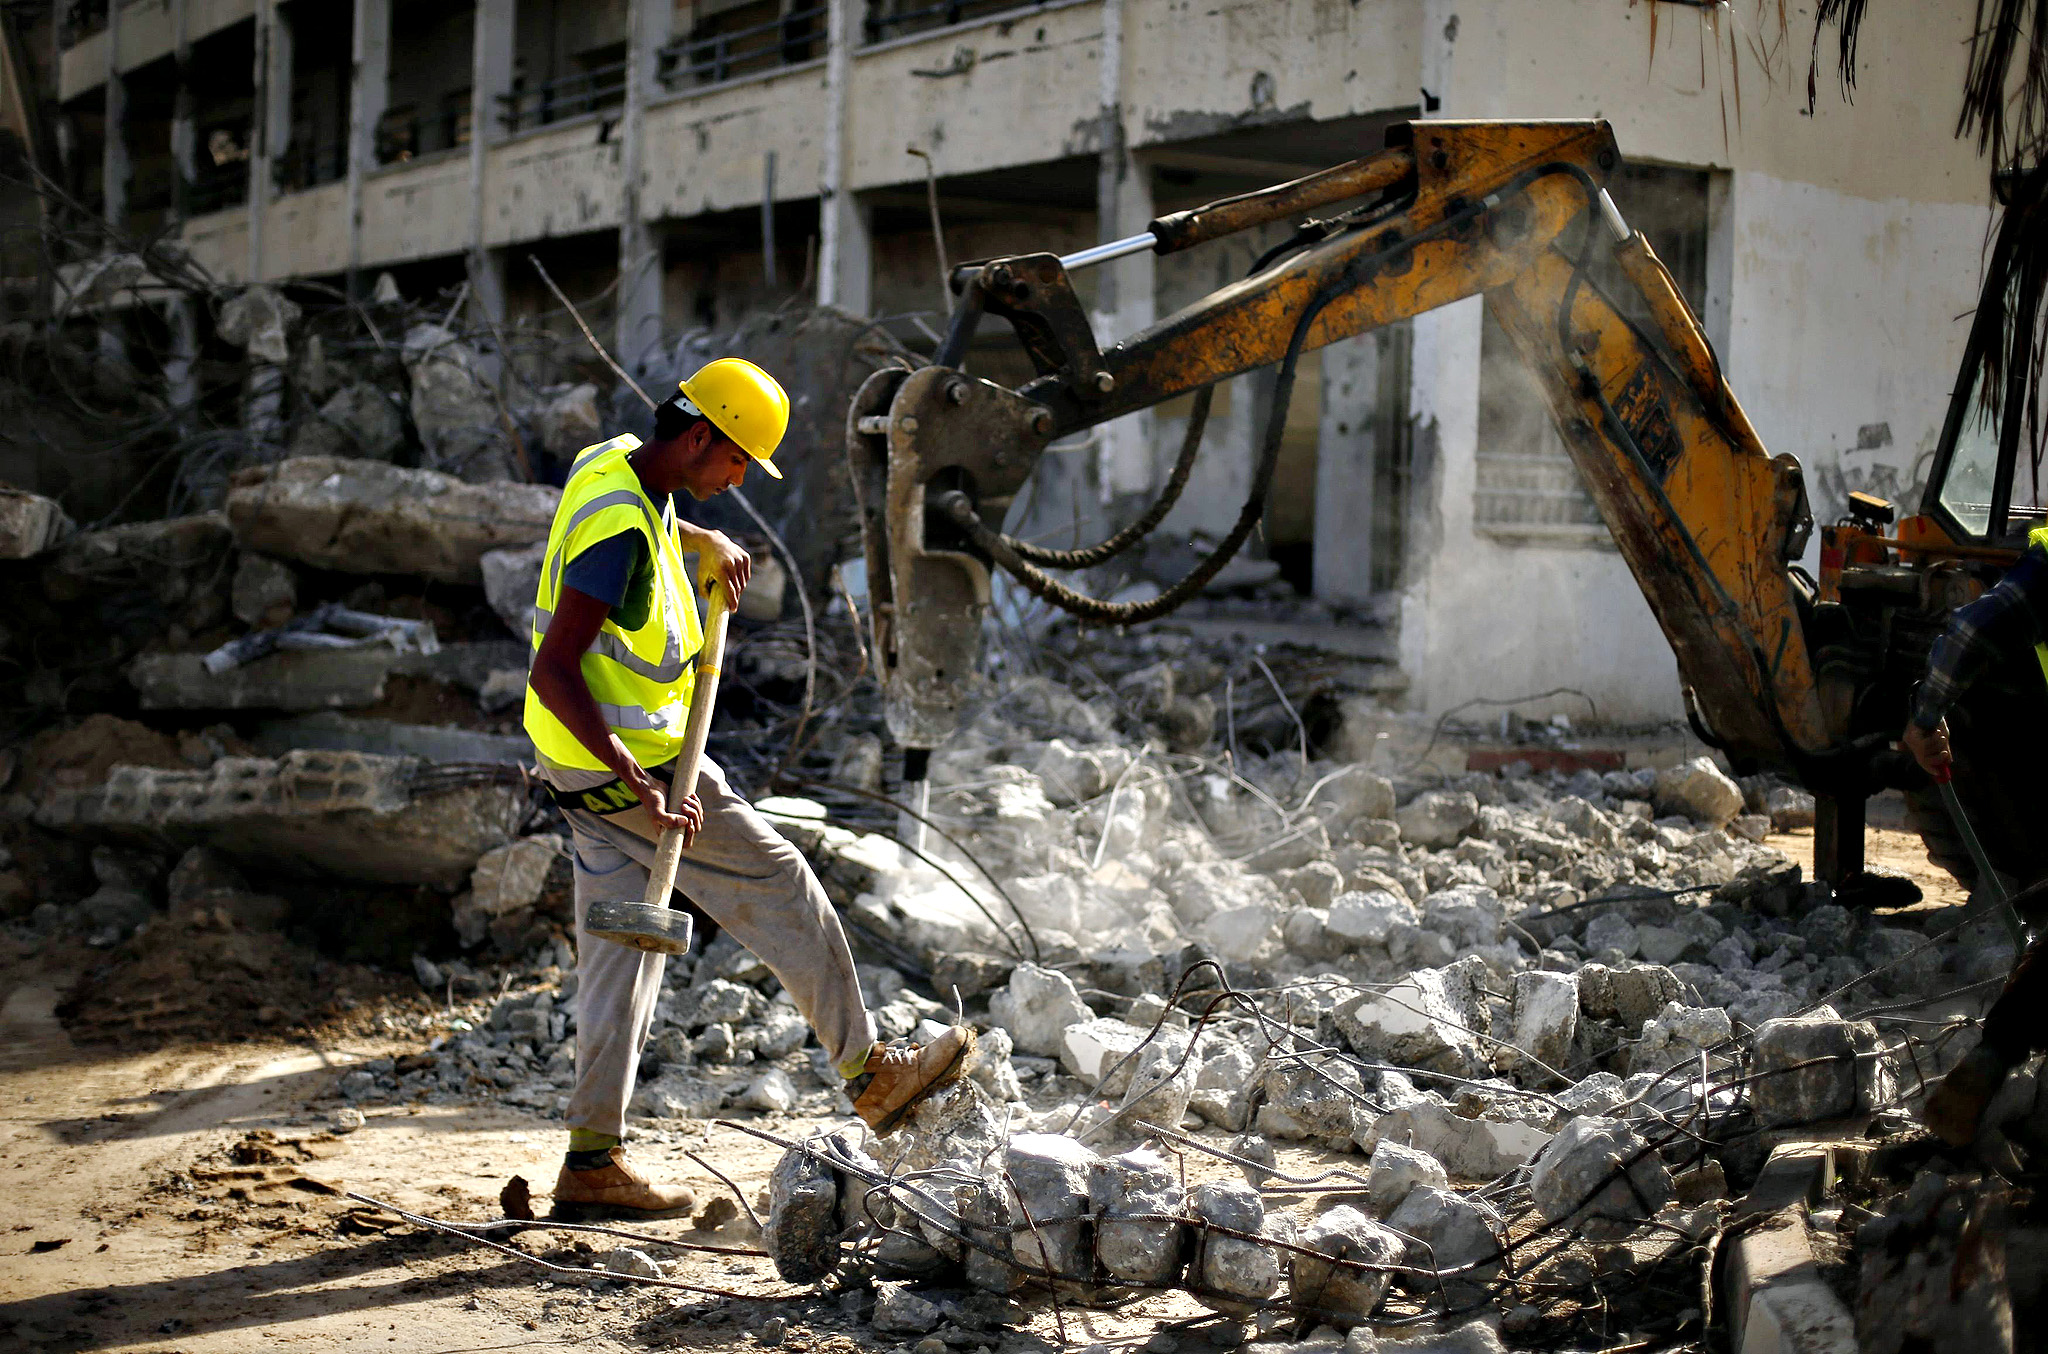 A Palestinian worker carries a hammer as he participates in efforts to clear the rubble of a school, that witnesses said was destroyed by Israeli shelling during the most recent conflict between Israel and Hamas, in the east of Gaza City December 3, 2014. According to housing minister Mufeed al-Hasayna, Gaza needs 8,000 tonnes of cement a day to meet demand. A new system set up with the United Nations to comply with Israeli requirements lets through at most 2,000, he said. At that rate, reconstruction would take more than 30 years, said Hasayna, one of four members of the unity government based in Gaza rather than the West Bank. Hasayna signed an agreement with the U.N. Development Programme and the Swedish government last week to equip and hire local contractors to clear and recycle rubble from northern Gaza